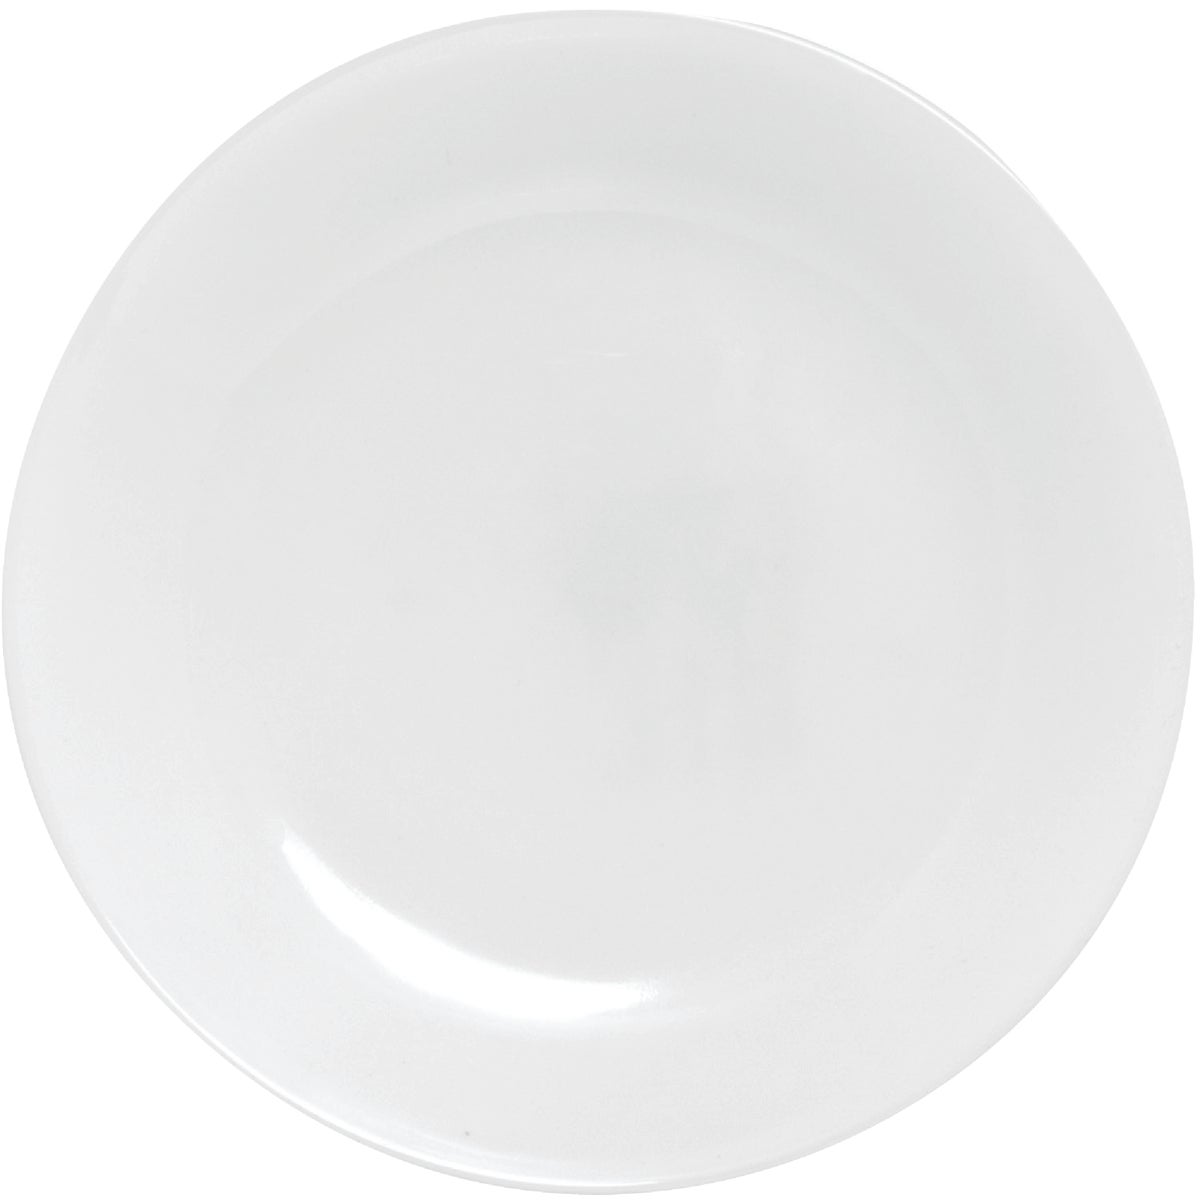 WHITE LUNCHEON PLATE